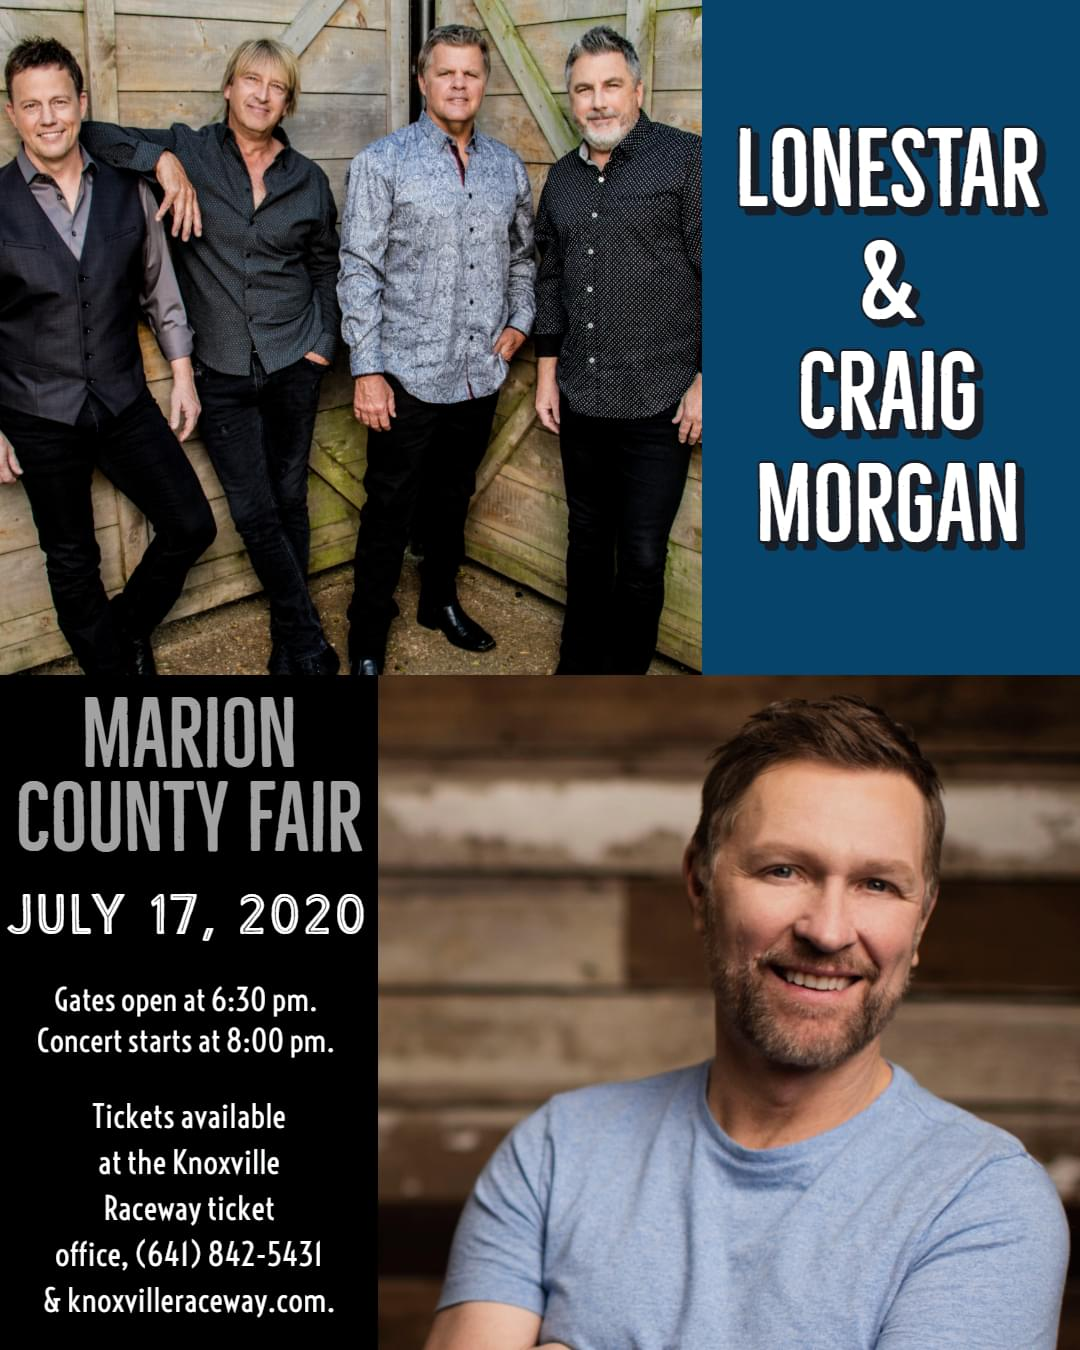 Marion County Fair Ticket Tuesday Sweet Deal